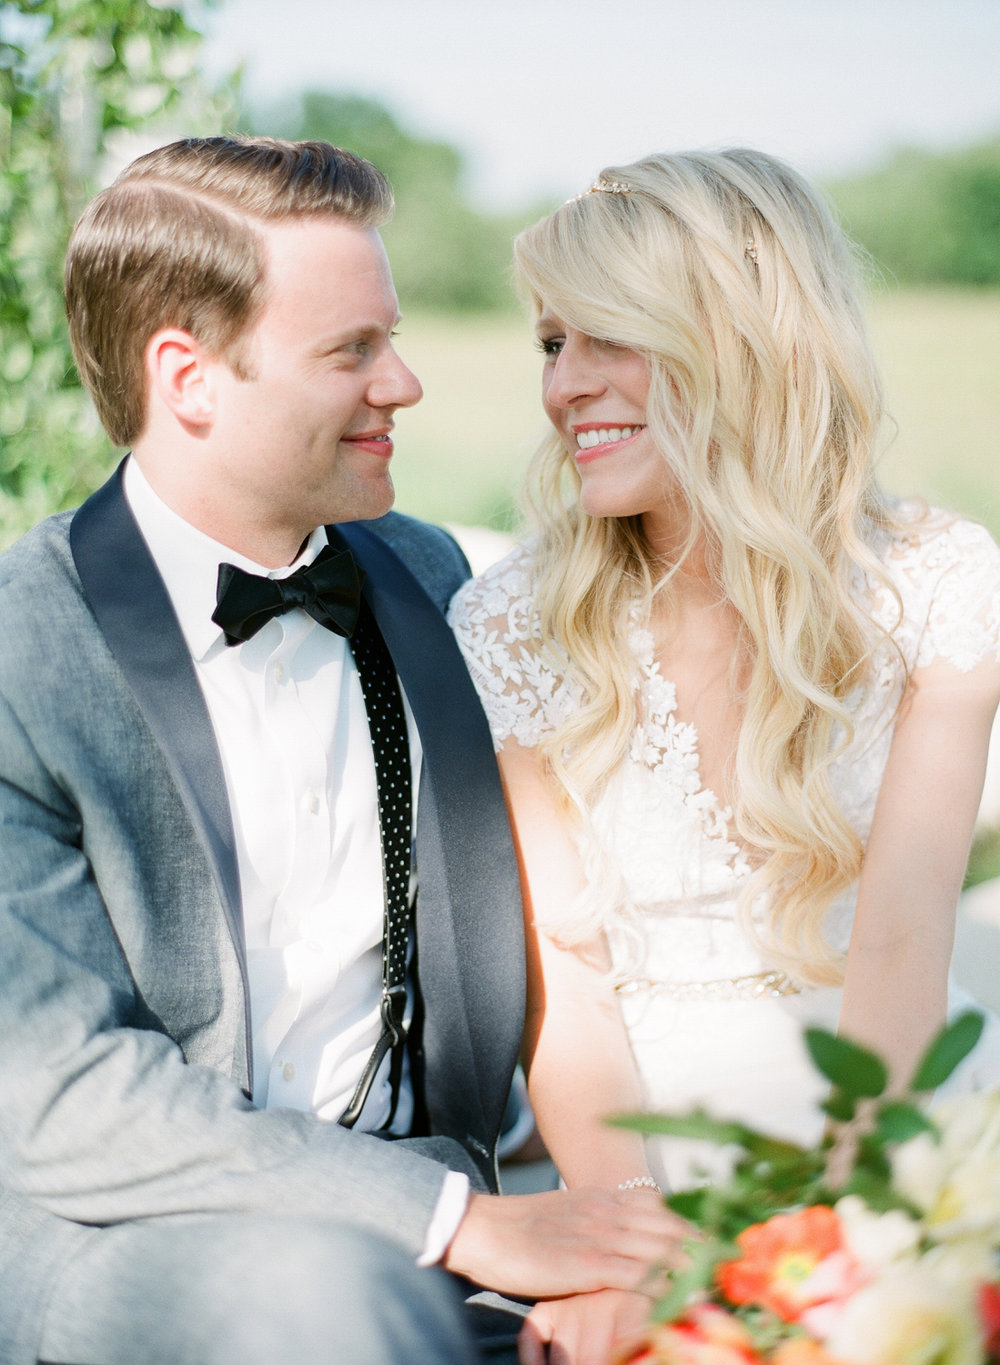 PROSPECT_HOUSE_WEDDING_AUSTIN_TX_BY_MATTHEW_MOORE_PHOTOGRAPHY_00121.jpg